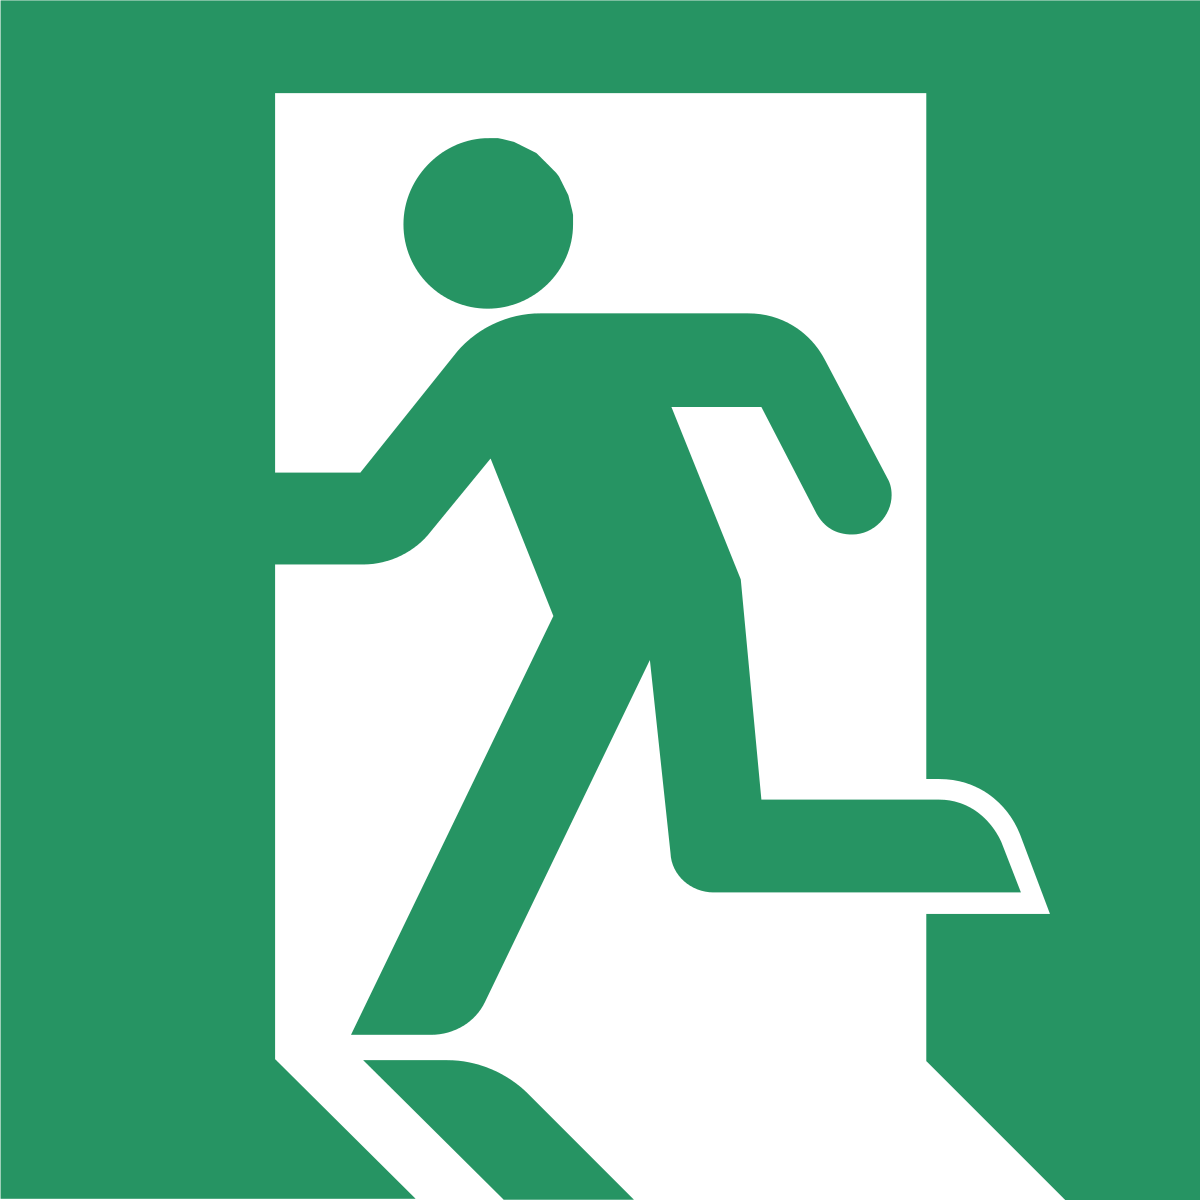 Exit sign wikipedia . Emergency clipart emergency service